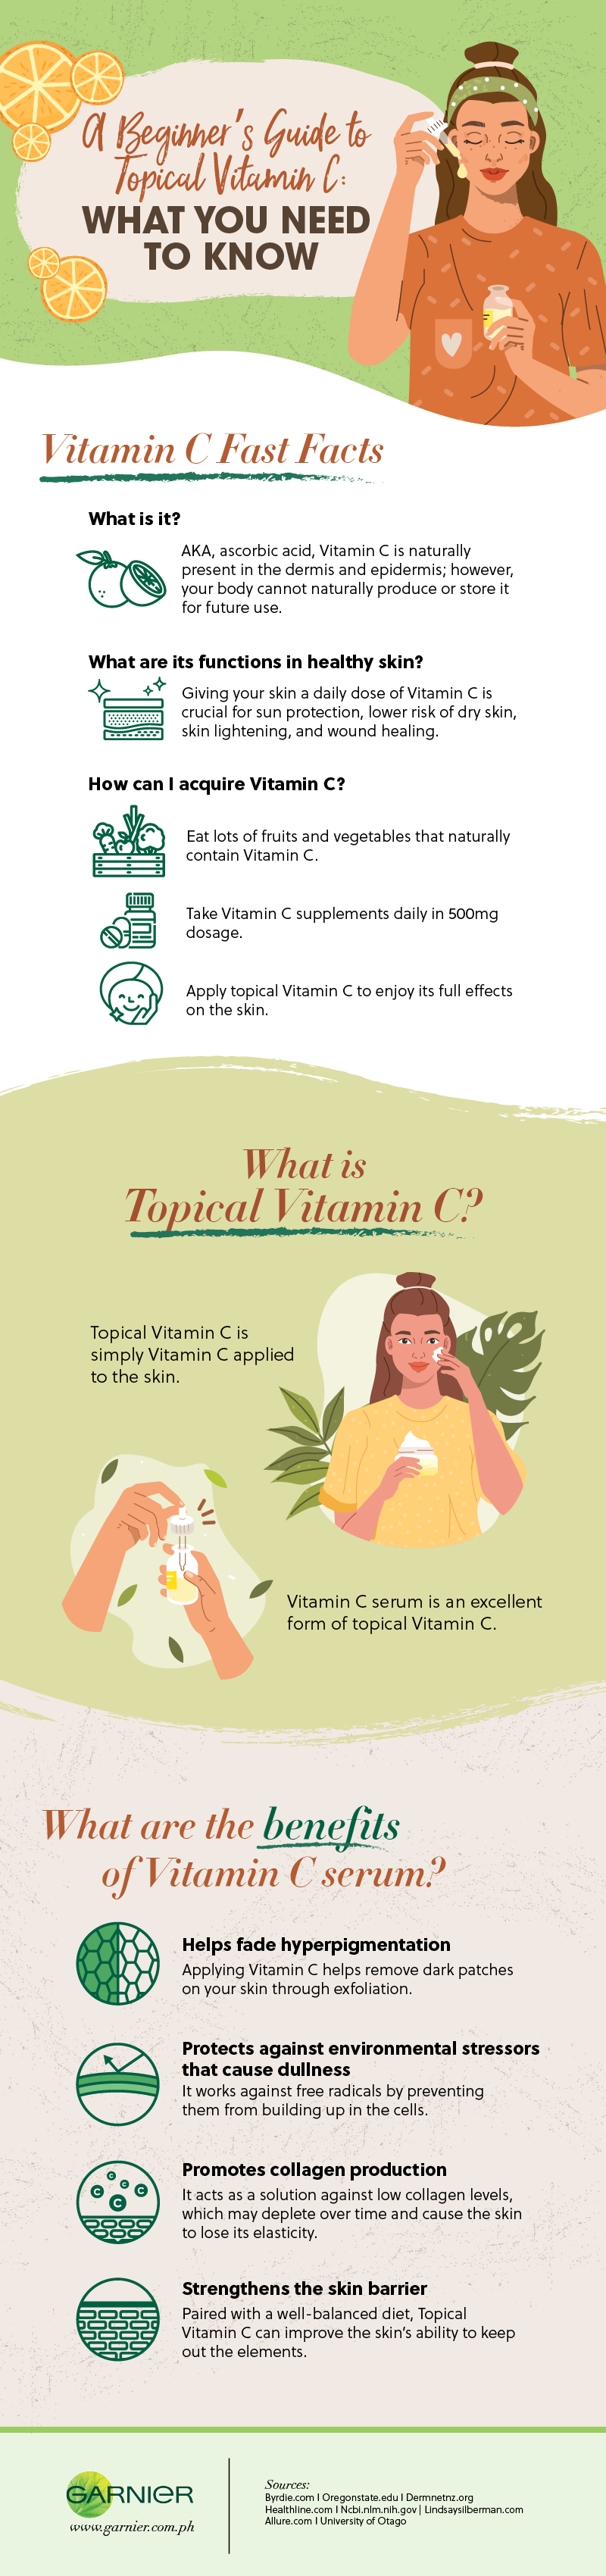 A Beginner's Guide to Topical Vitamin C: What You Need to Know #infographic #Beauty #Vitamin C #infographics #Skincare